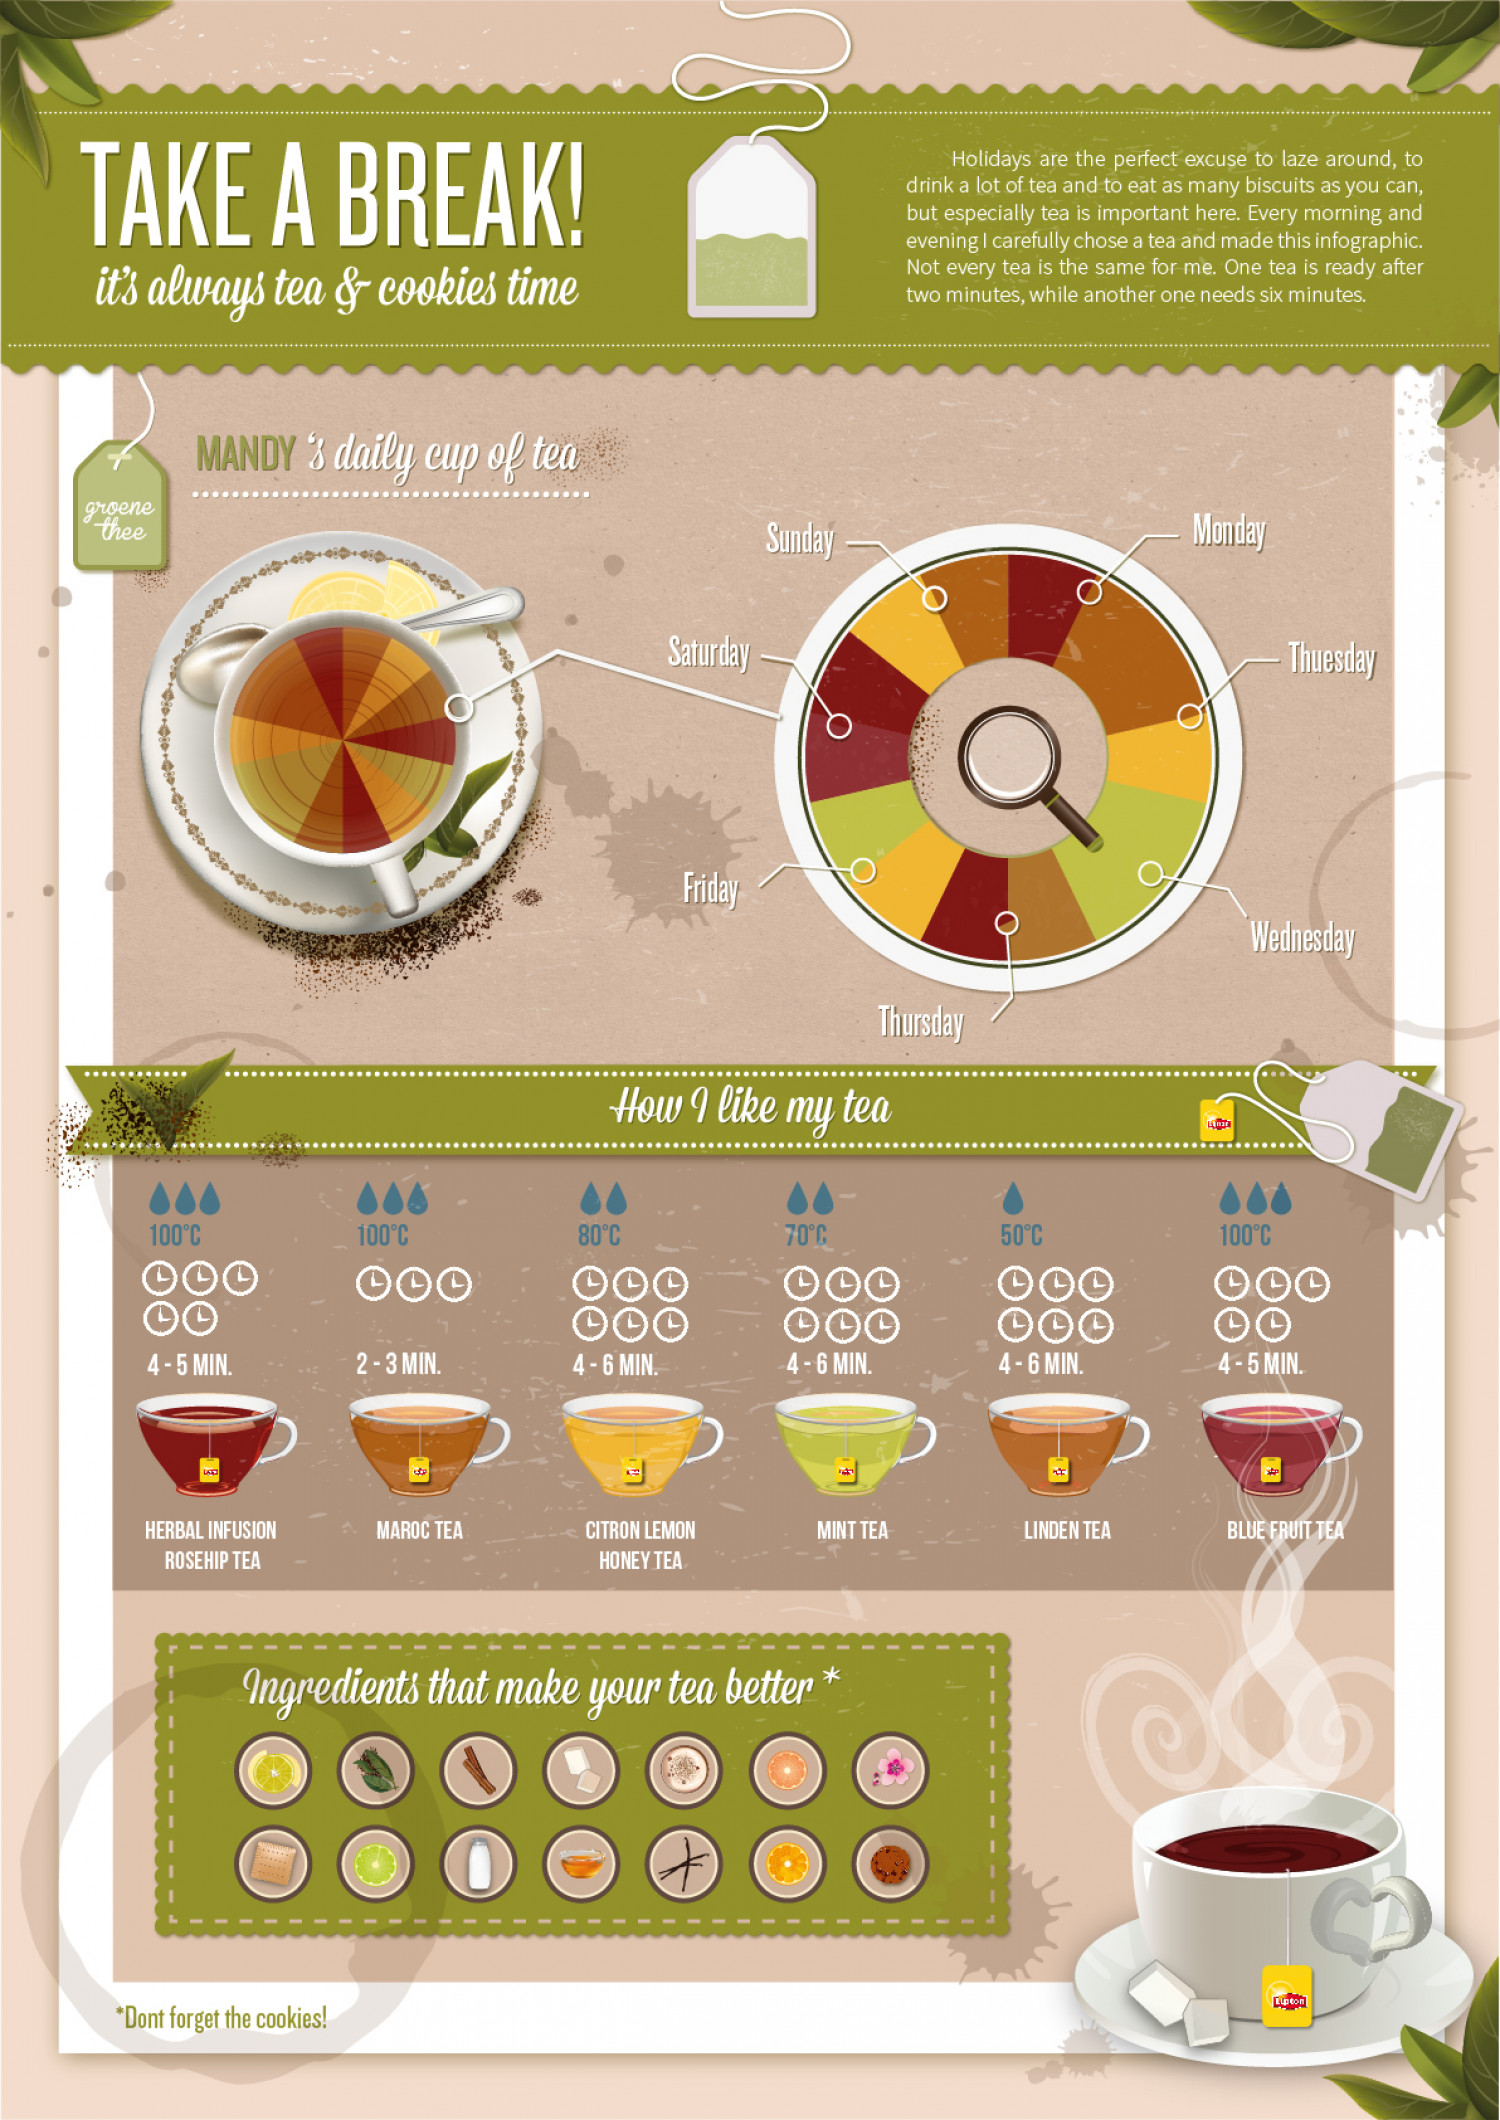 Take A Break! It's Always Tea & Cookies Time Infographic